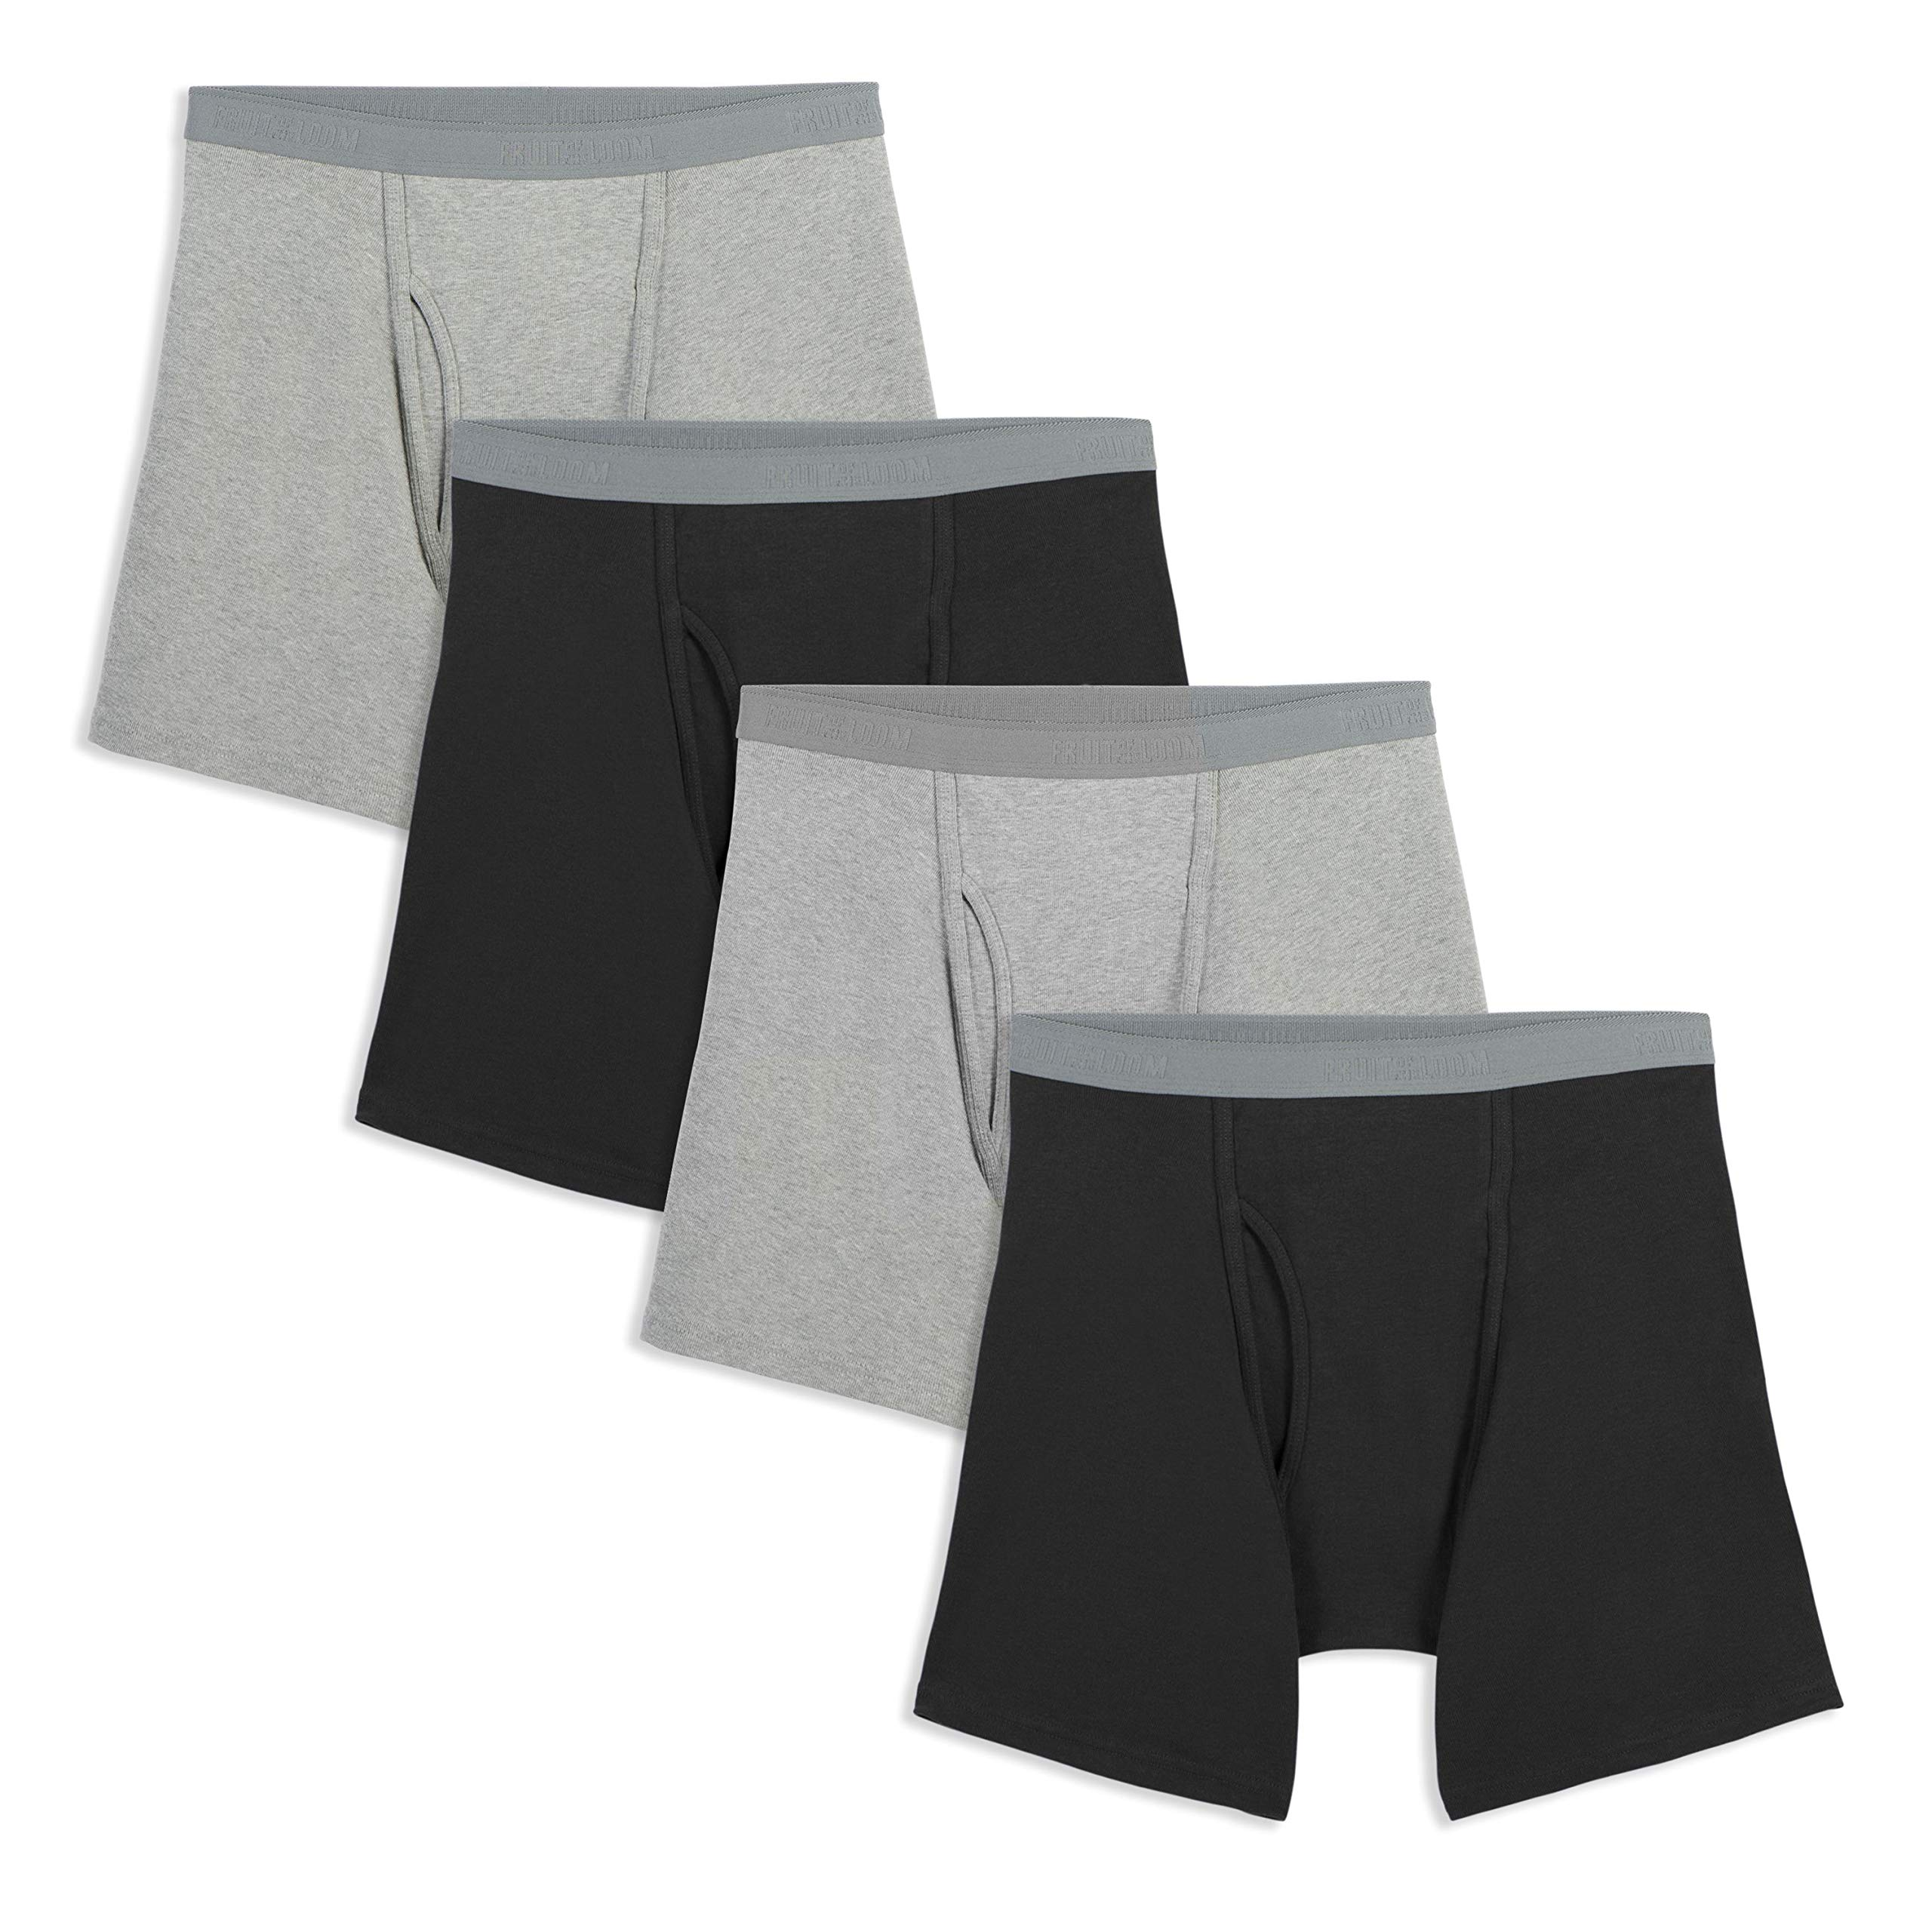 2a9e94953c76 Best Rated in Men's Novelty Boxer Briefs & Helpful Customer Reviews ...